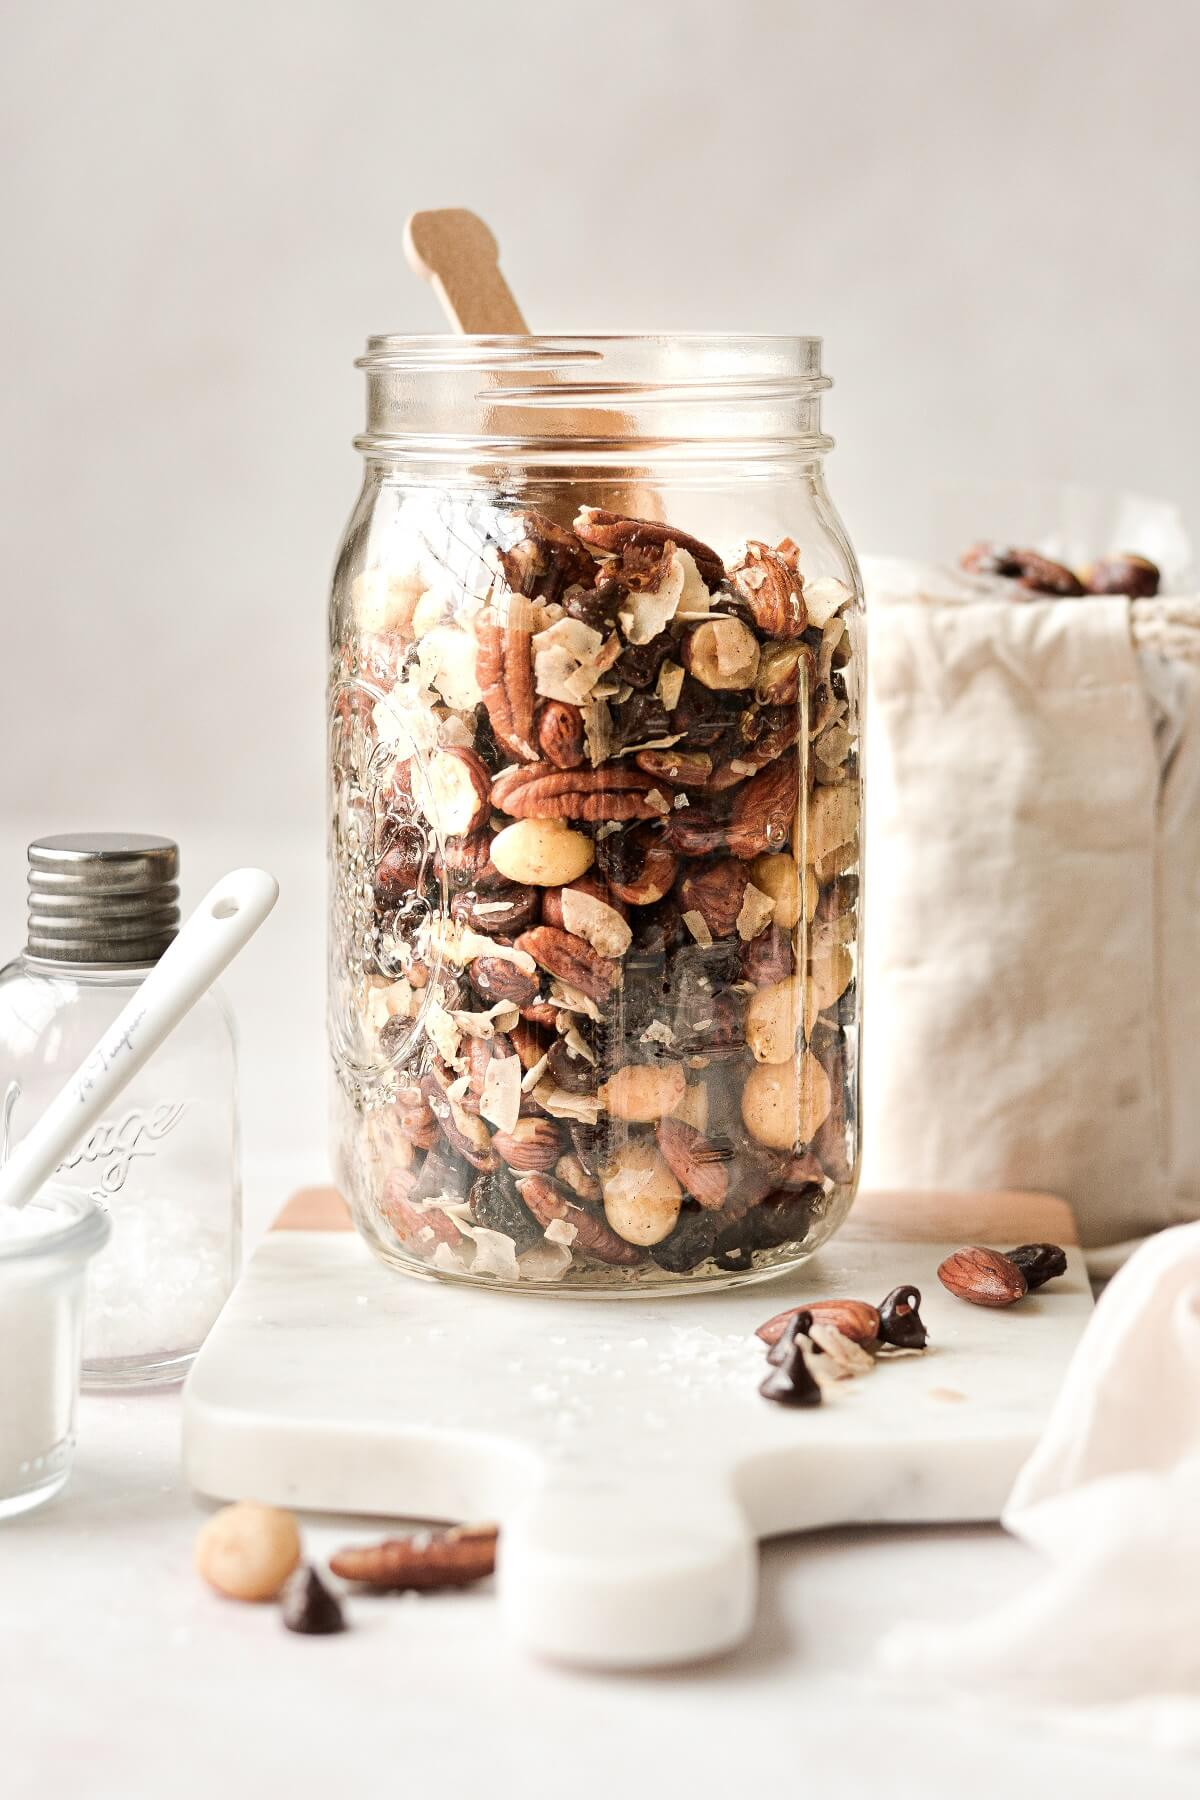 Homemade toasted trail mix in a glass jar.